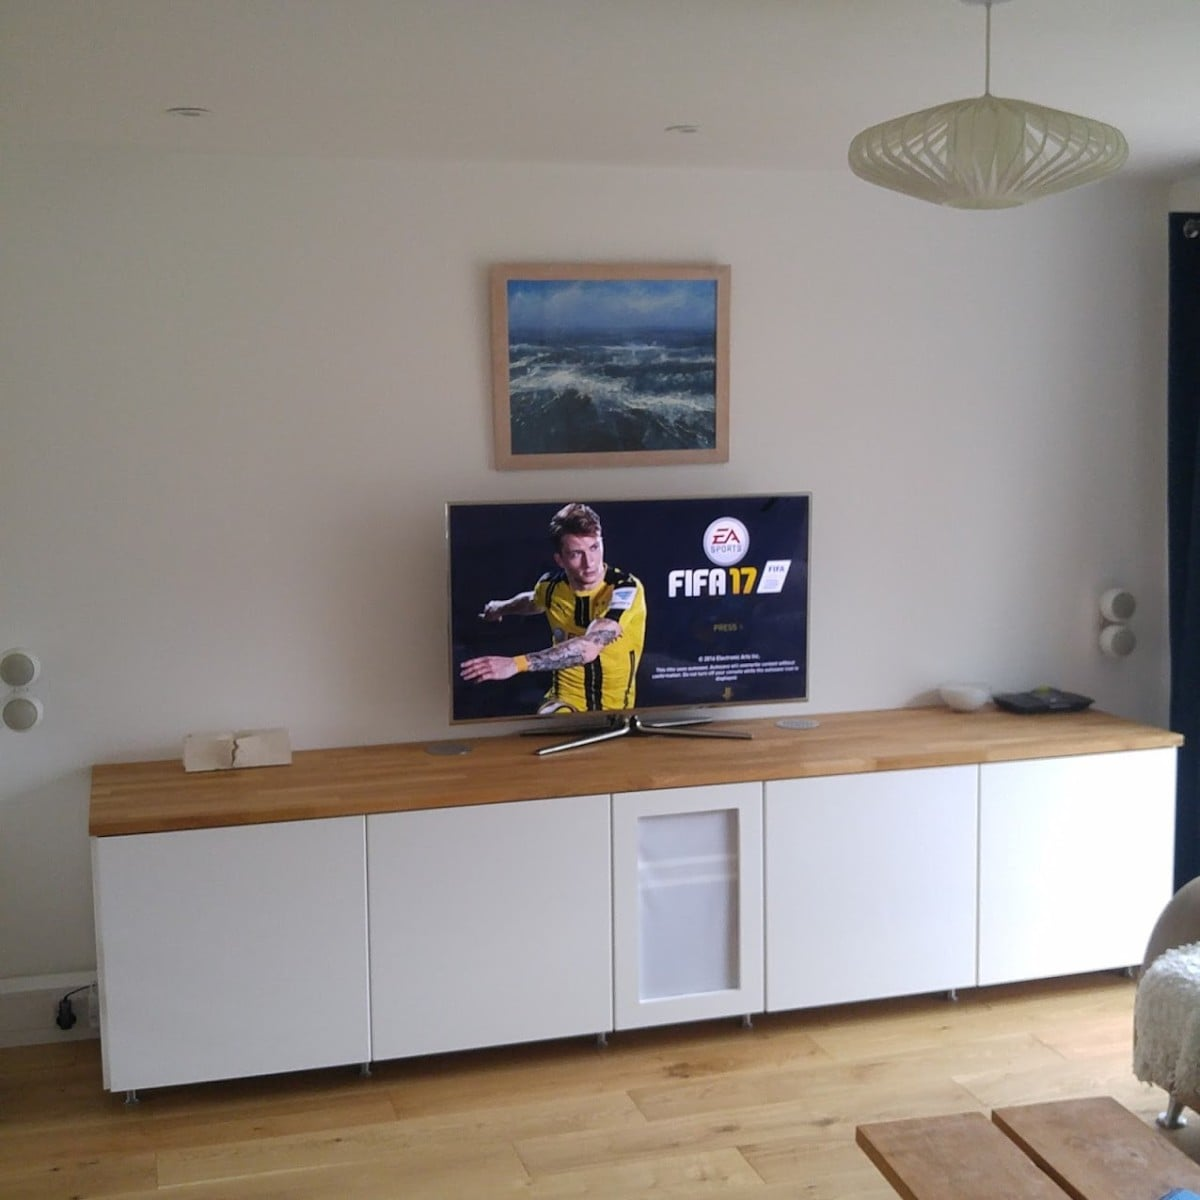 ikea metod cabinets into av unit ikea hackers. Black Bedroom Furniture Sets. Home Design Ideas